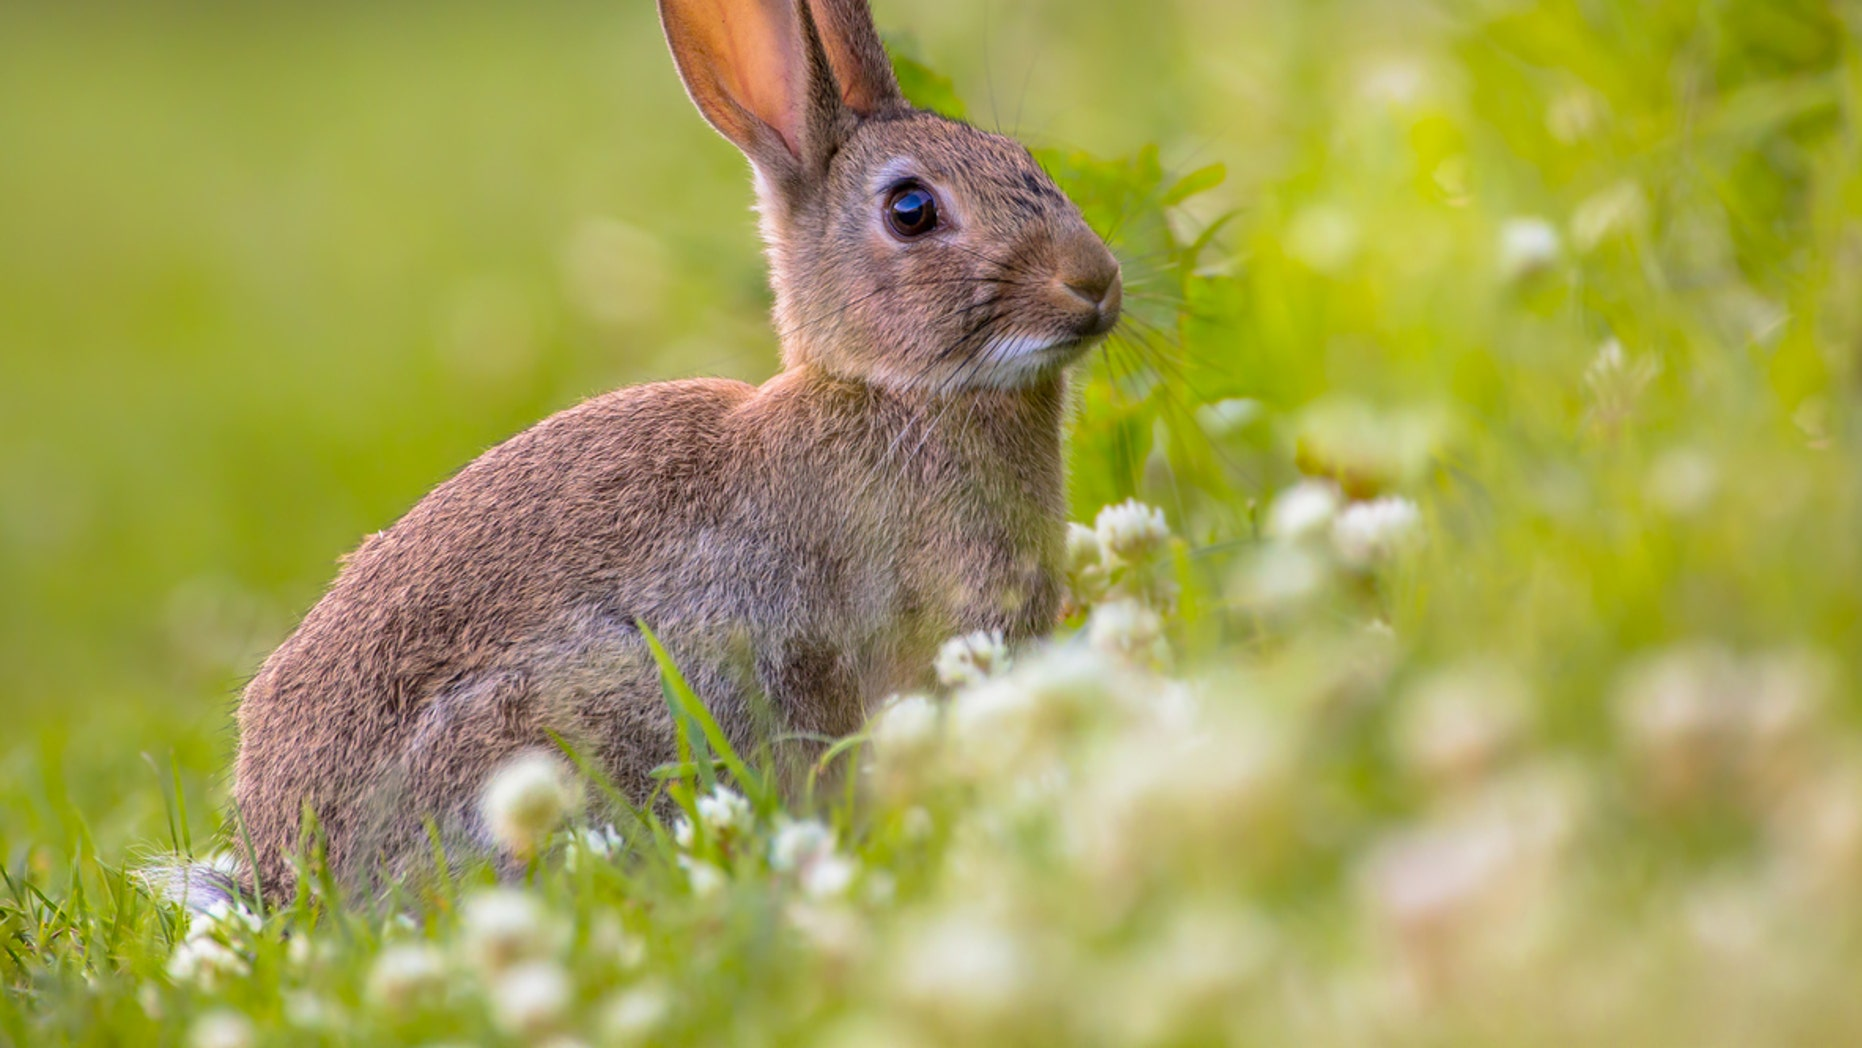 Rabbit fever is a bacterial infection caused by the bacterium Francisella tularensis.